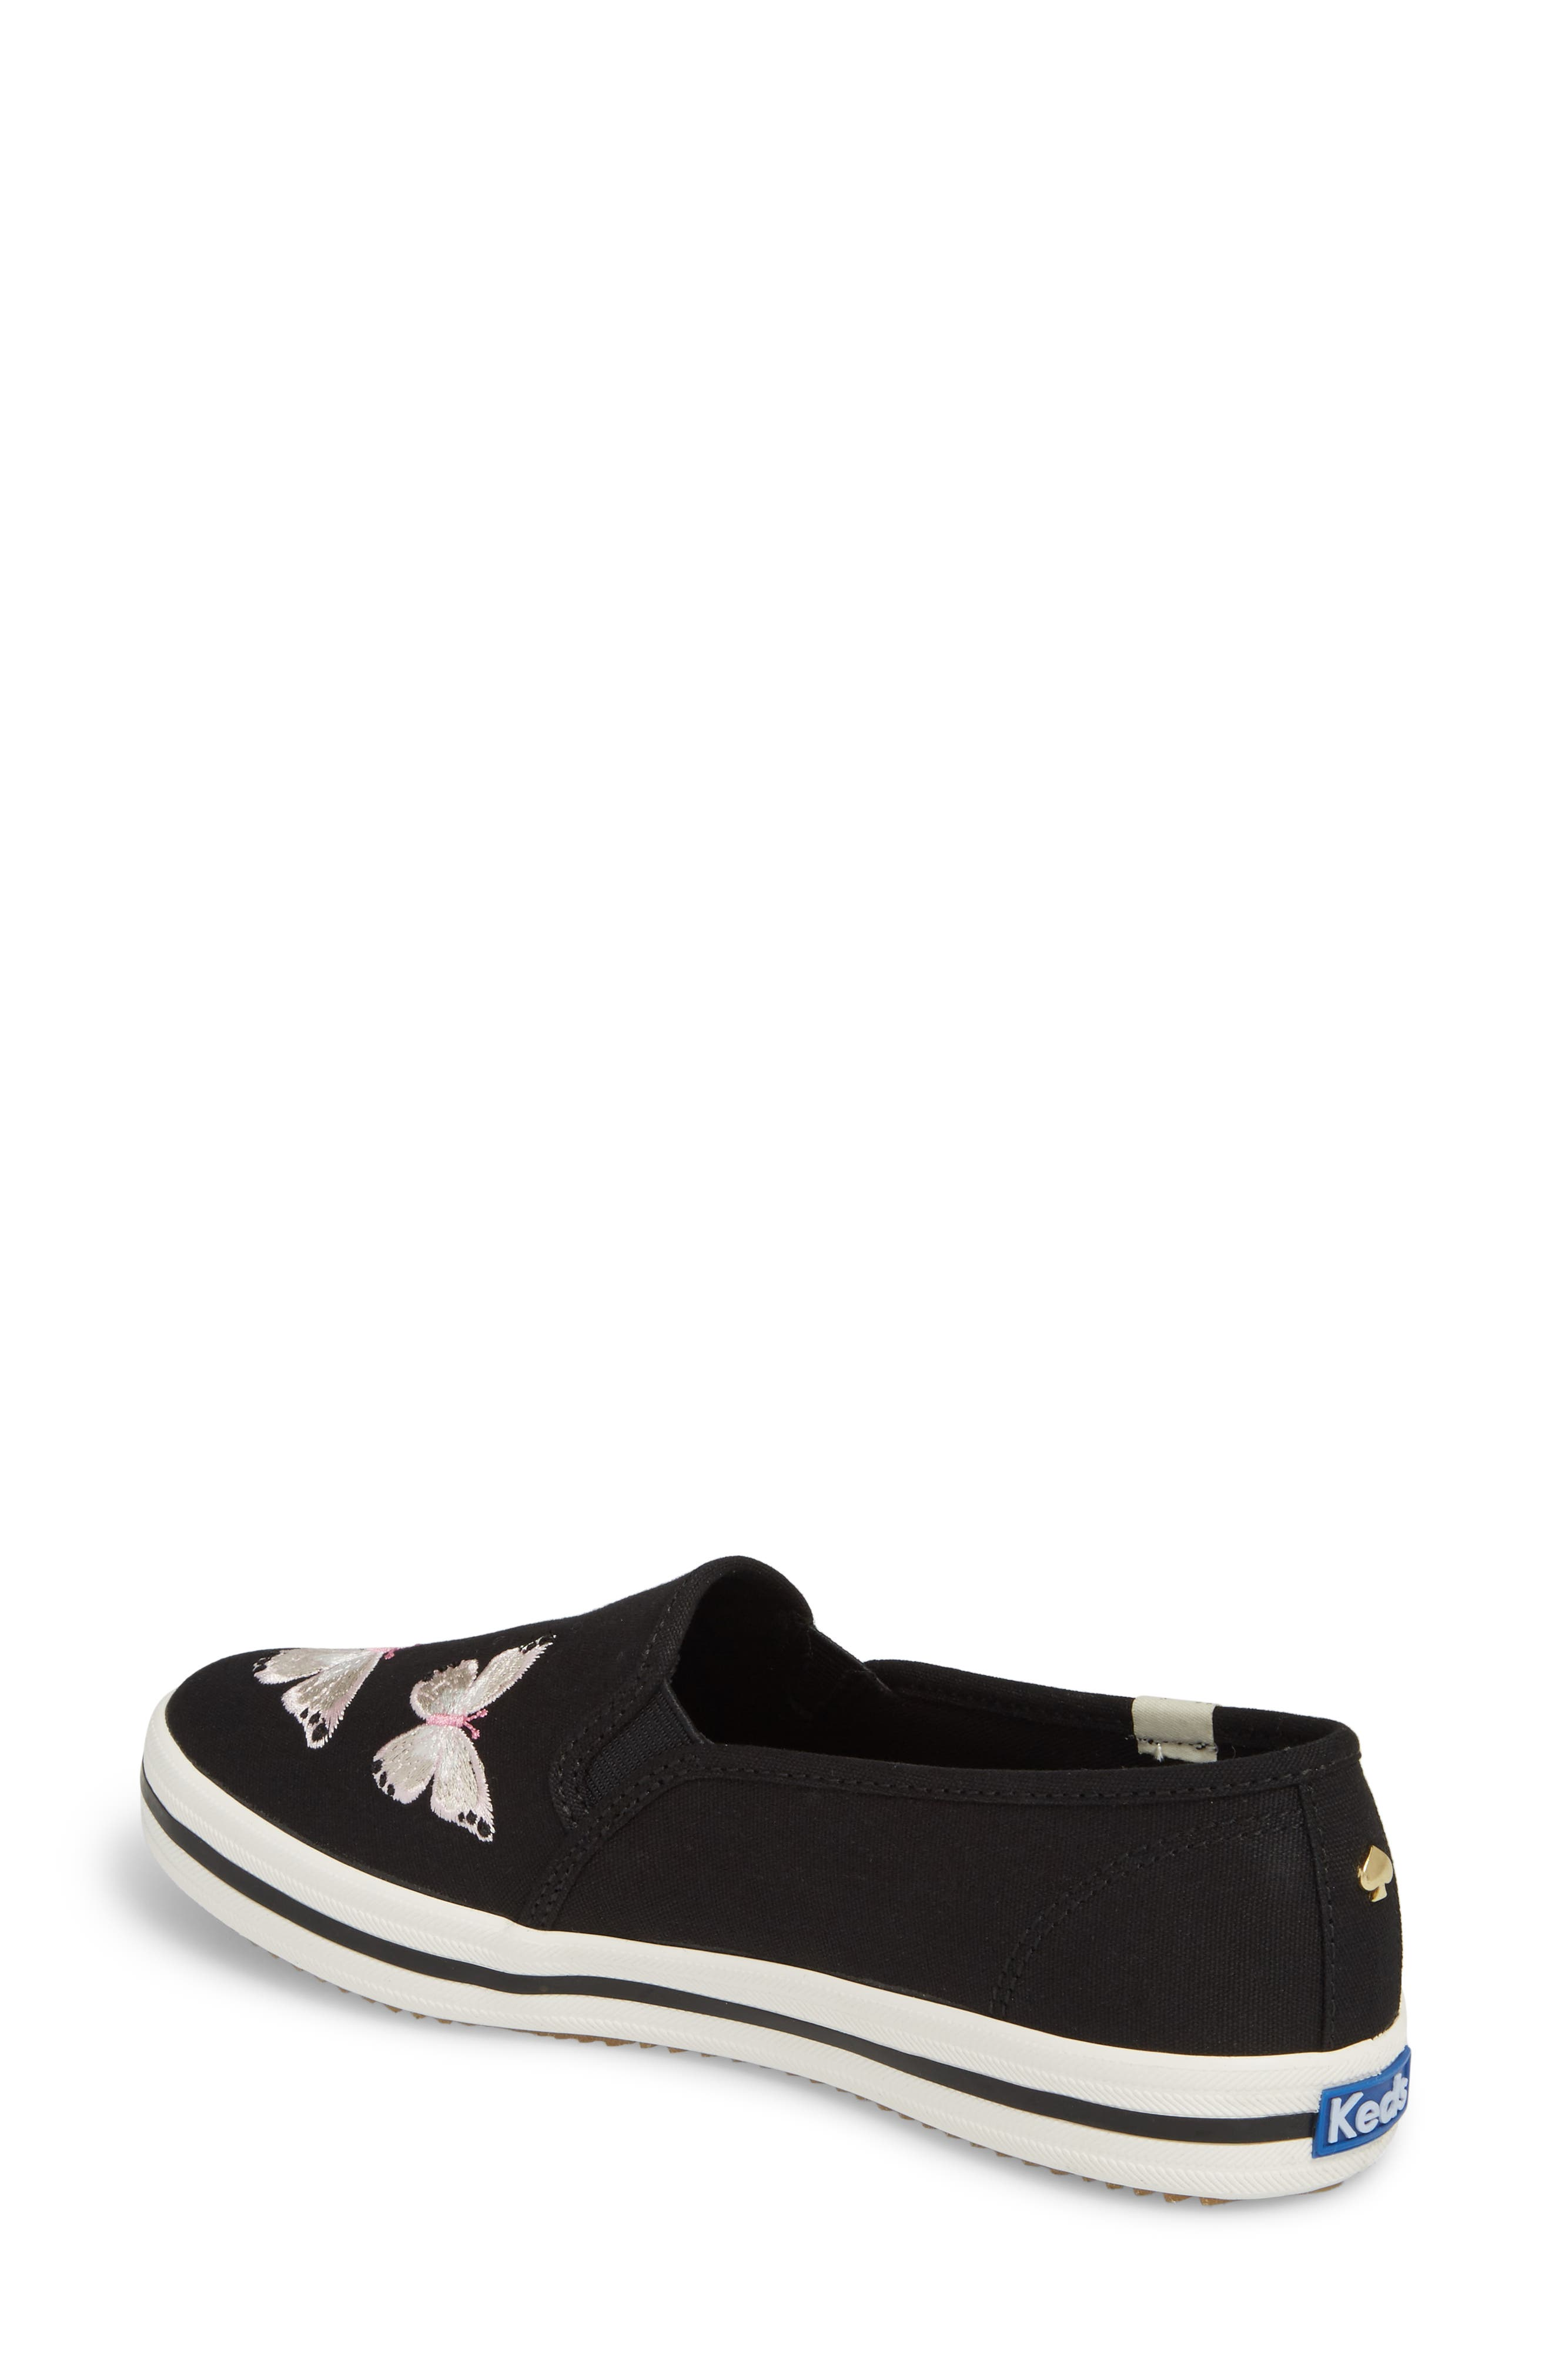 butterfly double decker slip-on sneaker,                             Alternate thumbnail 2, color,                             Black